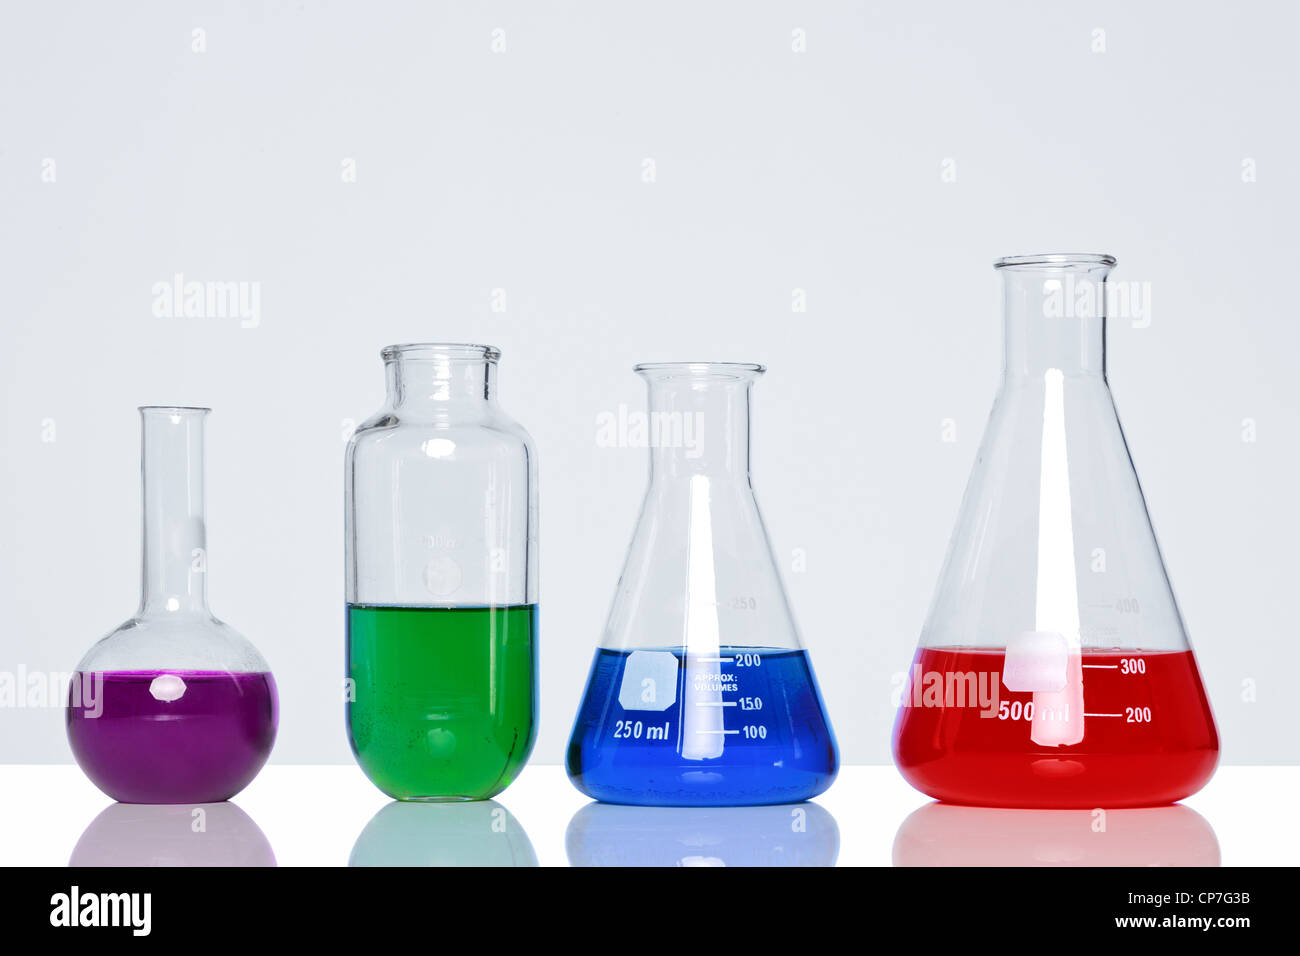 Photo of chemicals in glass flasks and beakers - Stock Image